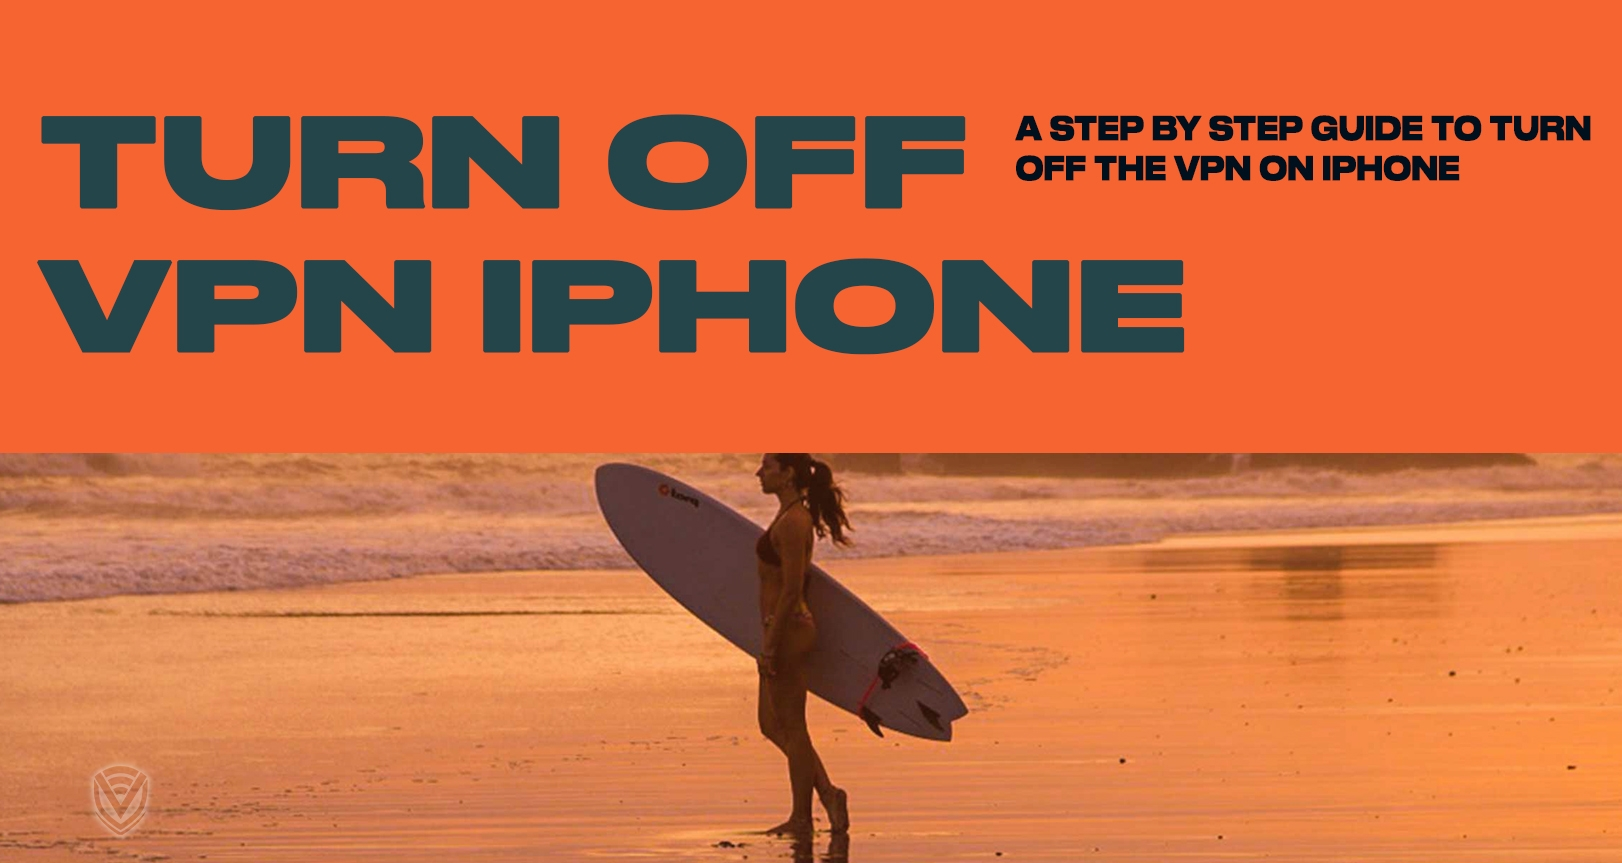 How to Turn Off VPN on iPhone: Step by Step Tutorial